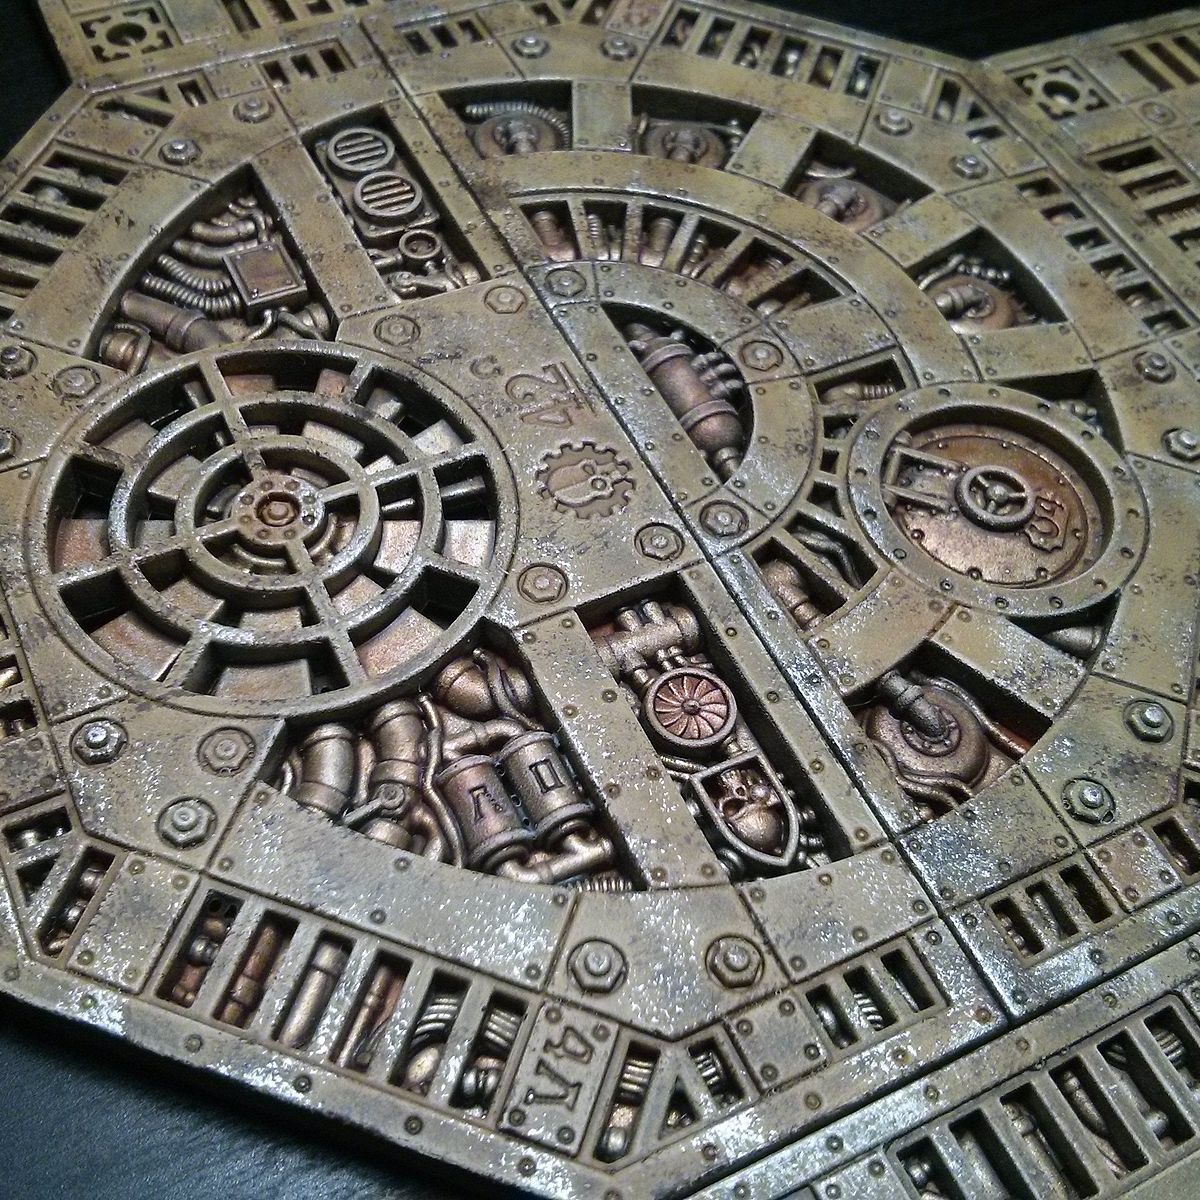 Sector Mechanicus Deckplates